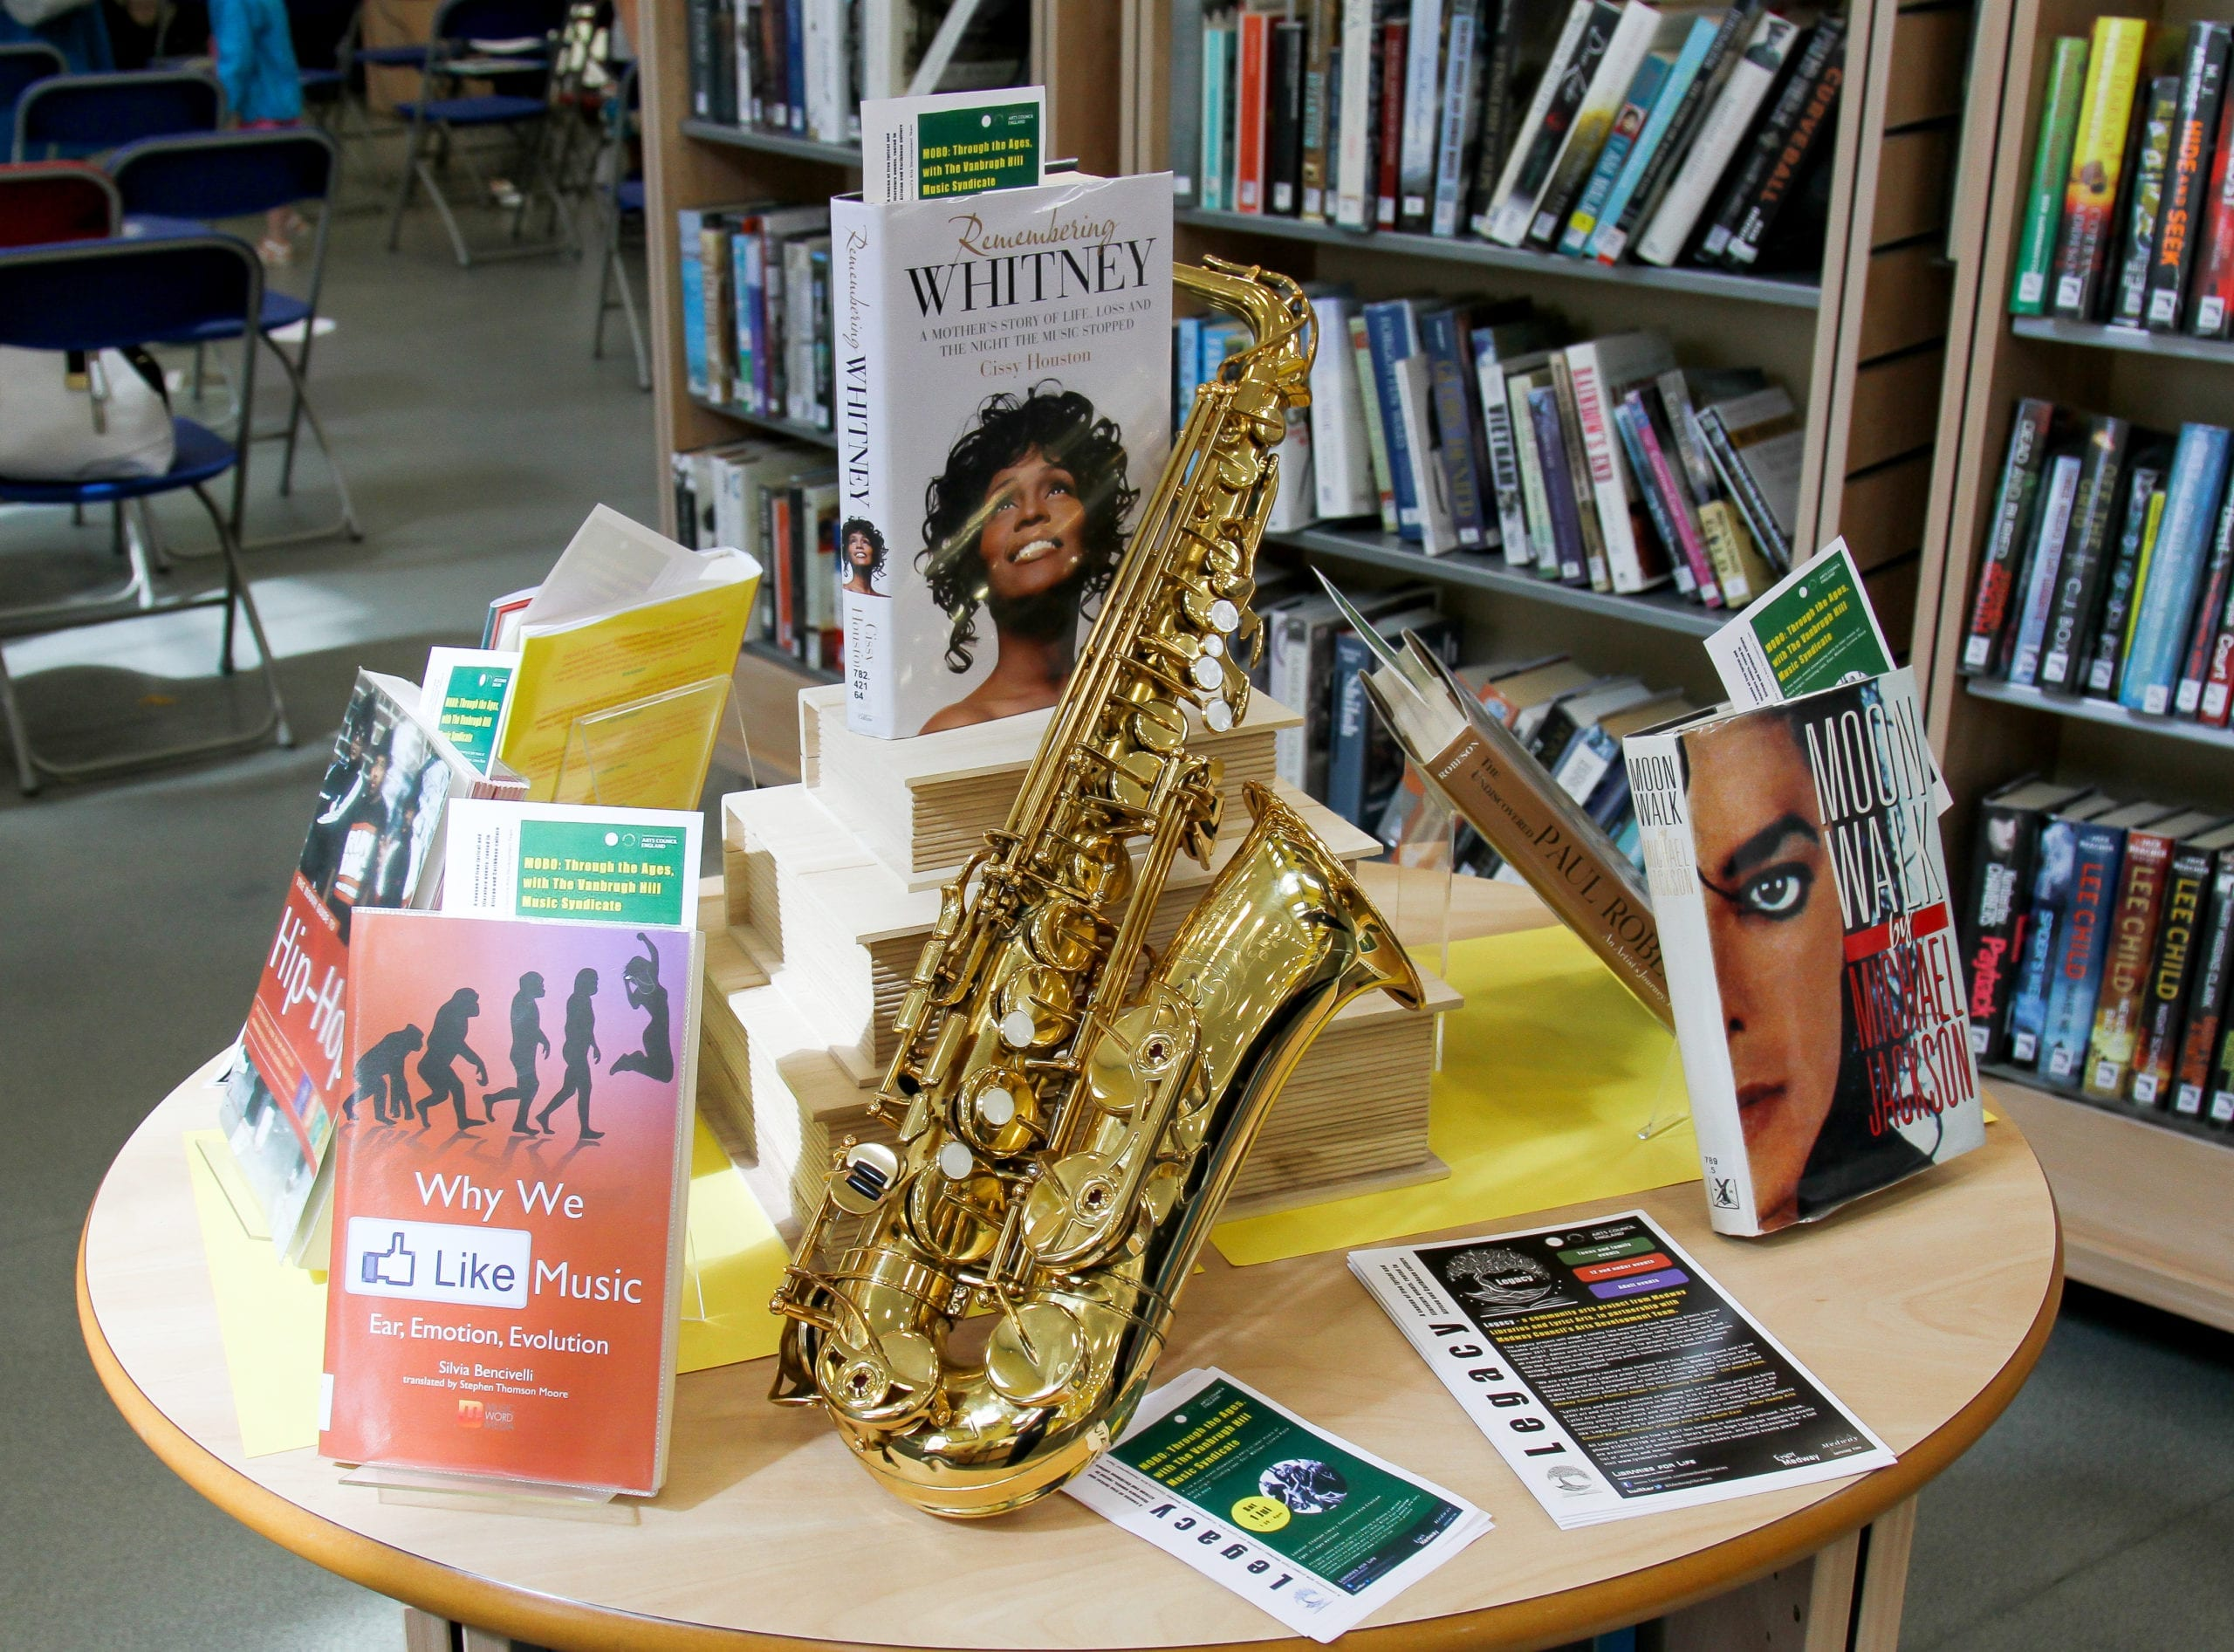 A book displaying showing a collection of books about music and a saxophone